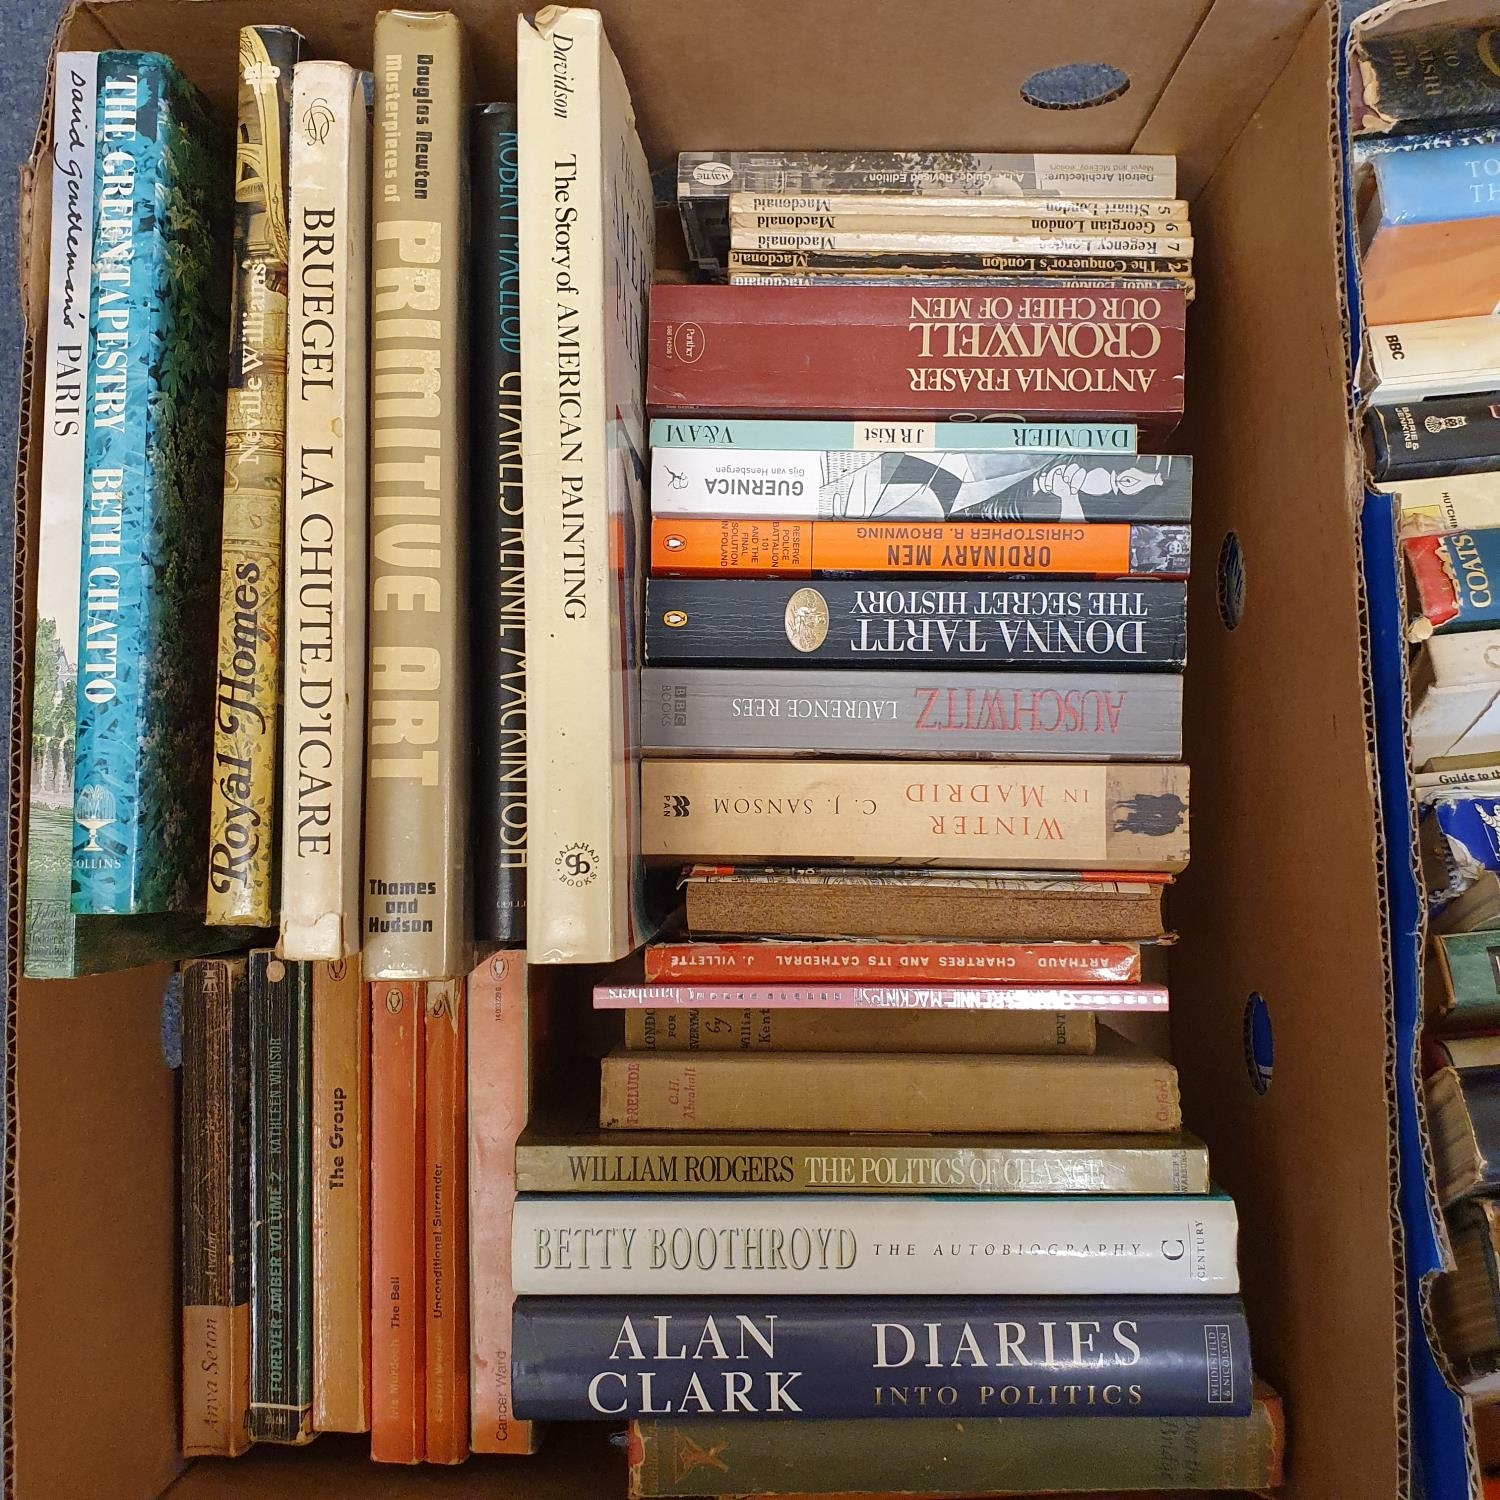 Hibbert (Christopher) London, and a large group of other books (19 boxes) - Image 18 of 21